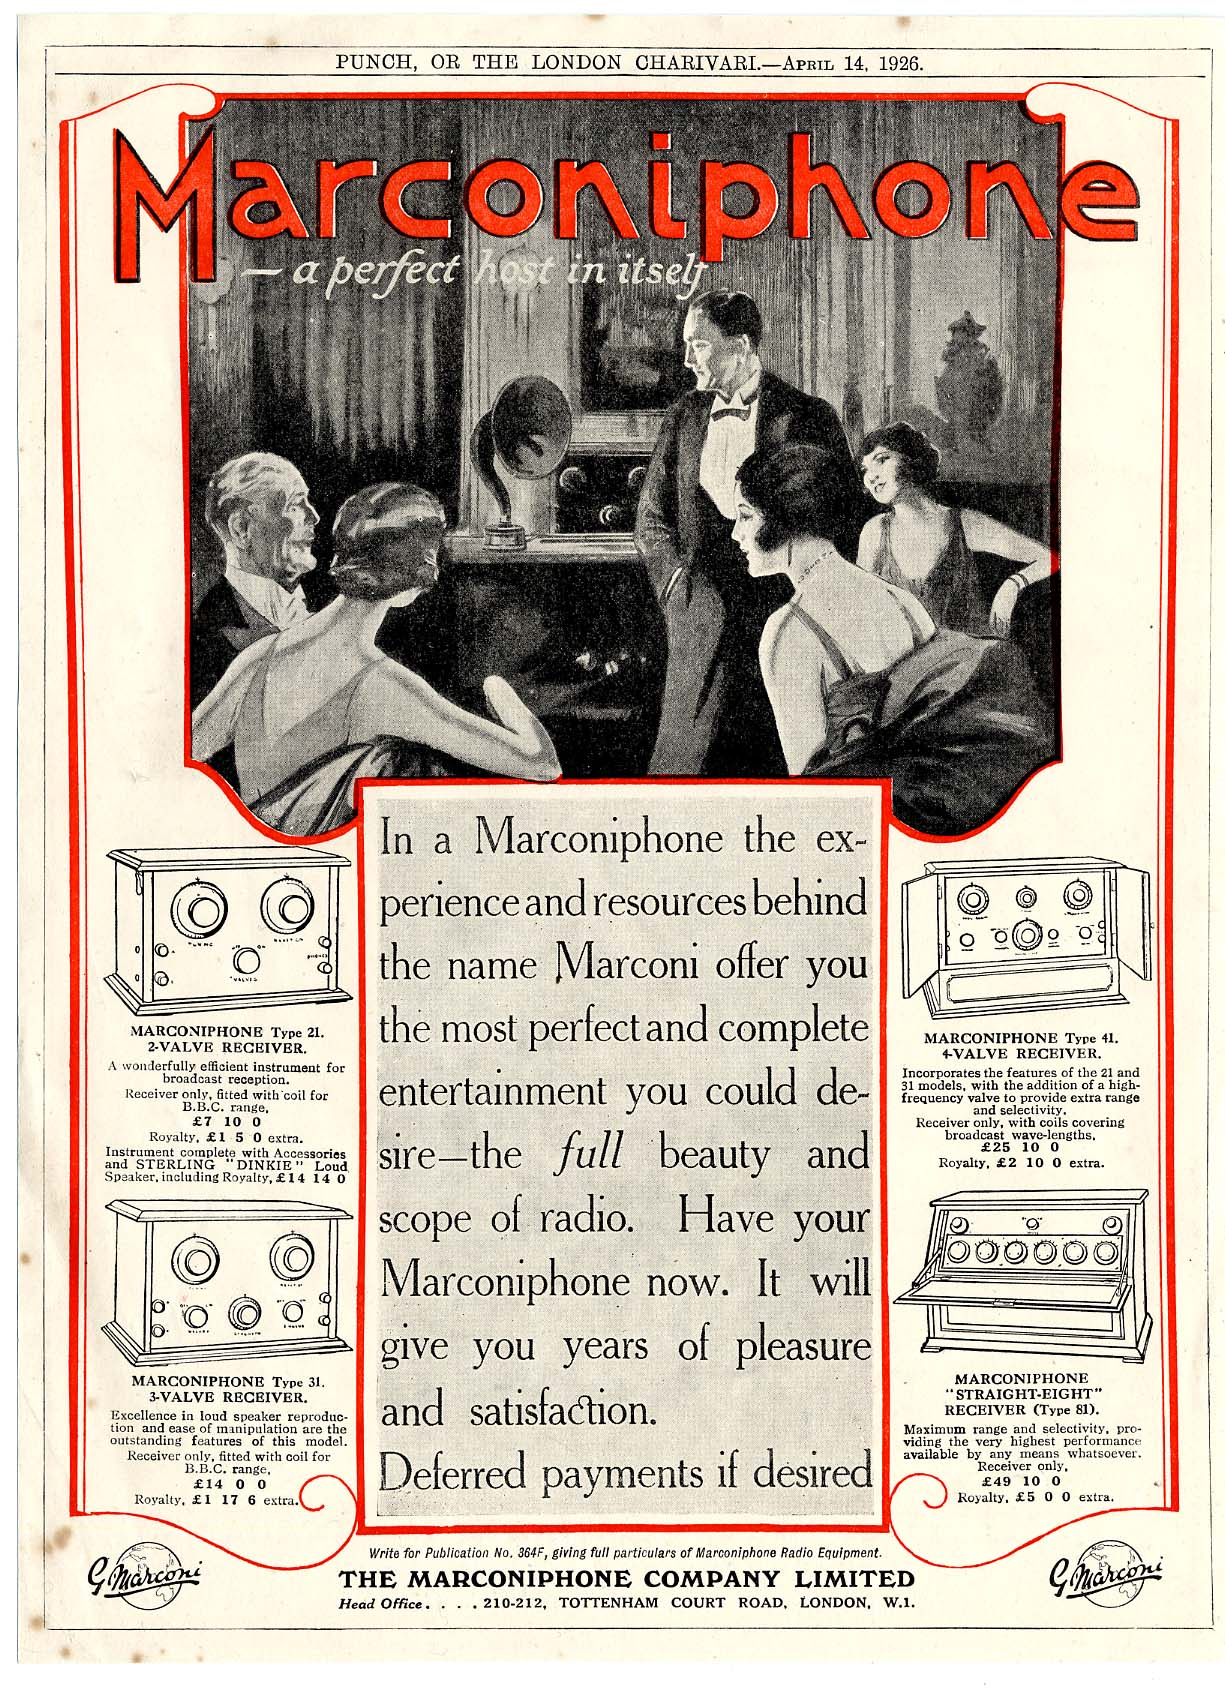 Marconi Advertisement from Punch, April 1926